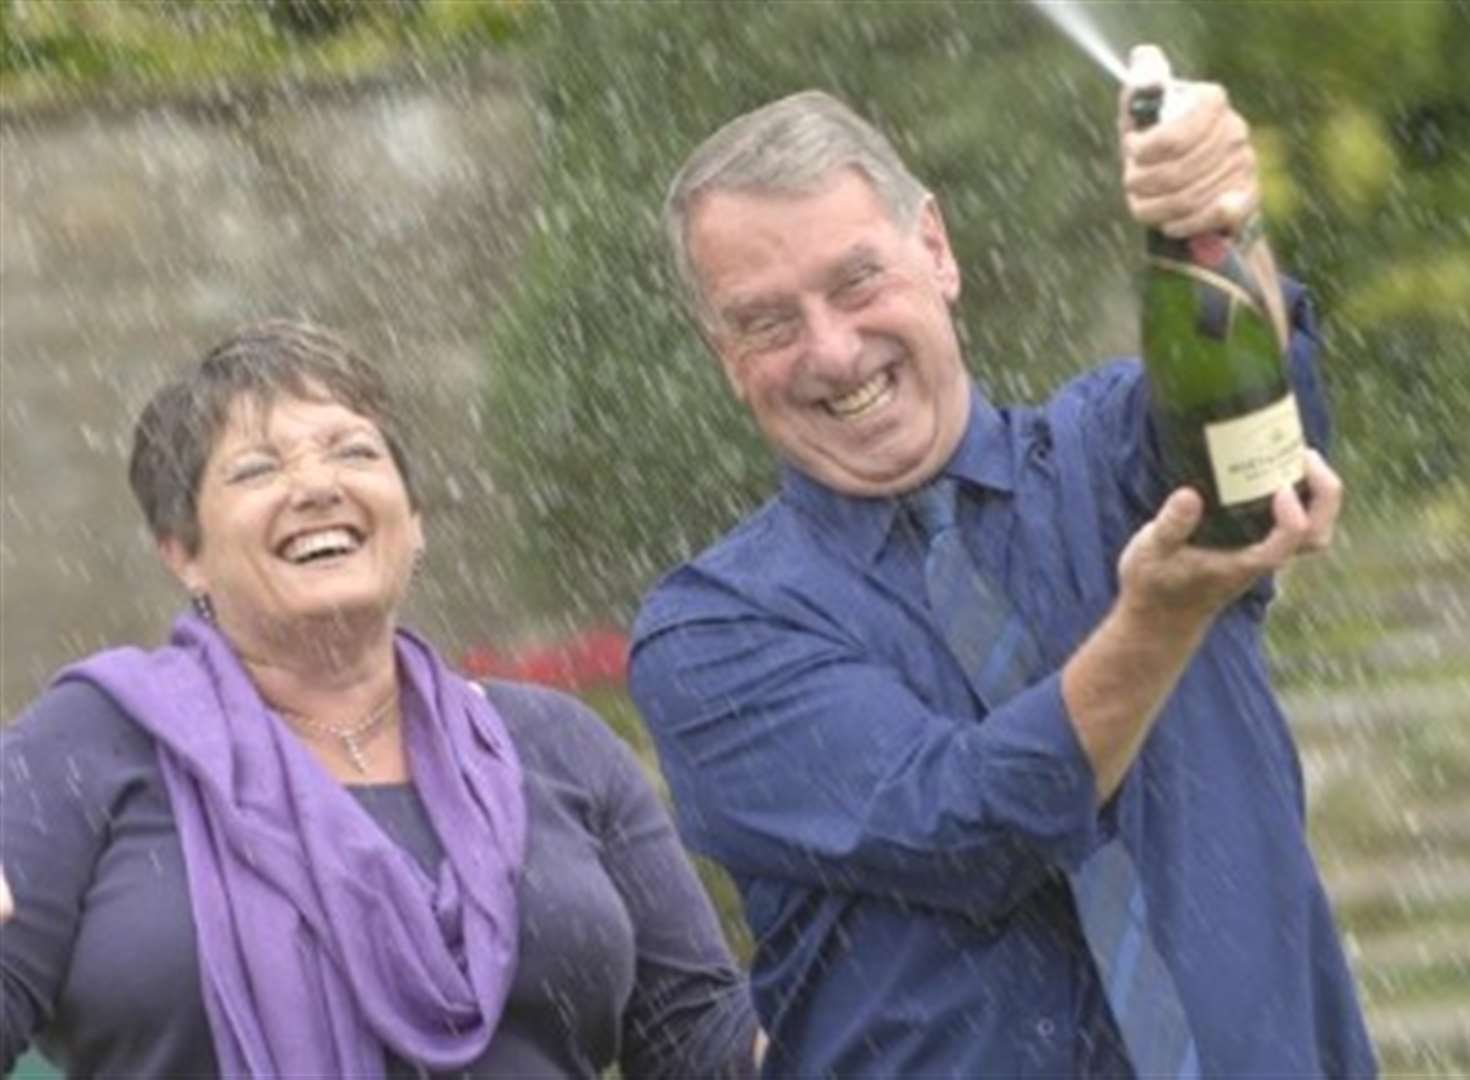 Naturists celebrate £240,000 lotto win